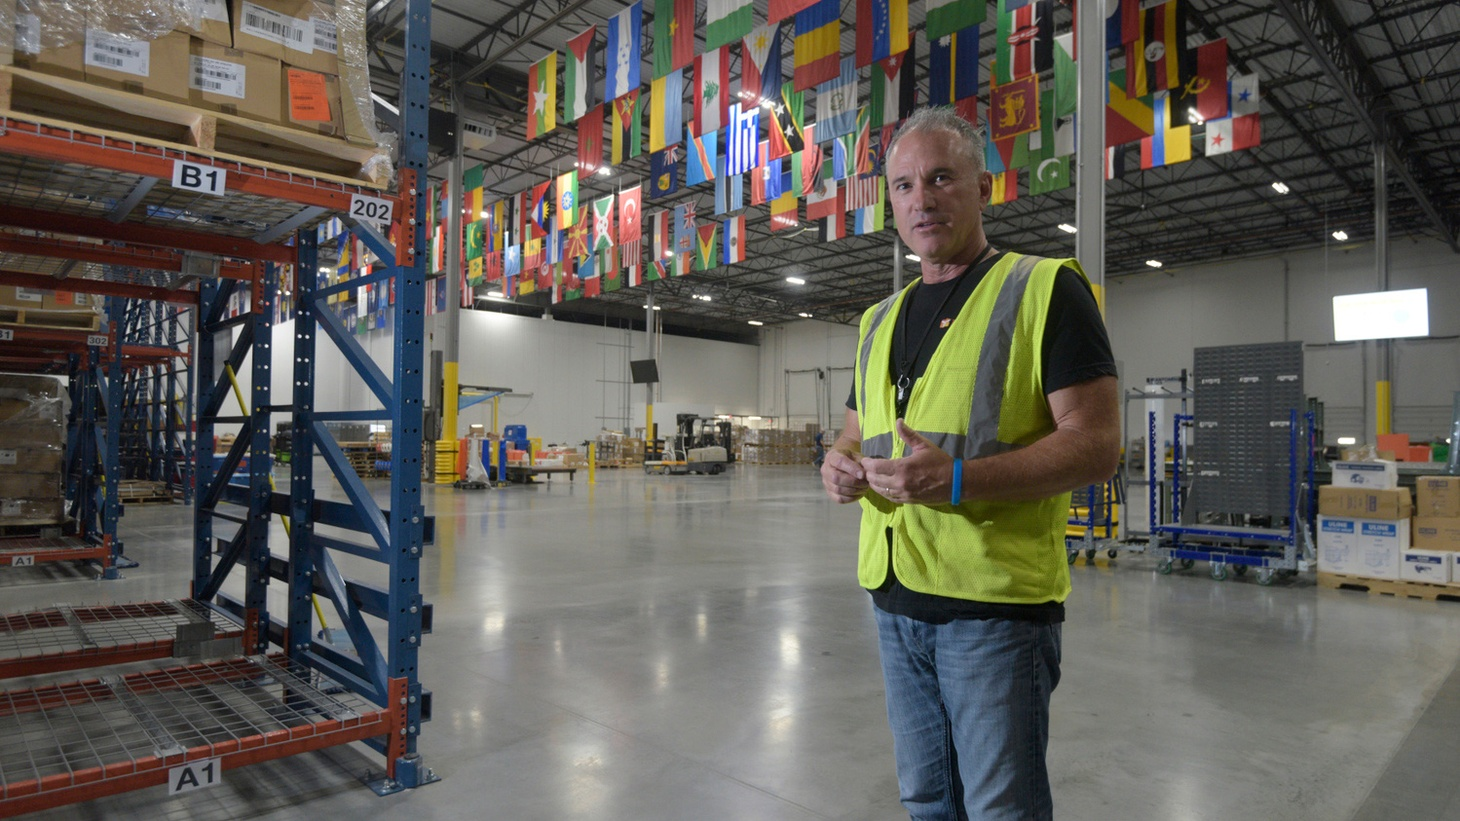 Thomas Tighe in Direct Relief's medical supply warehouse